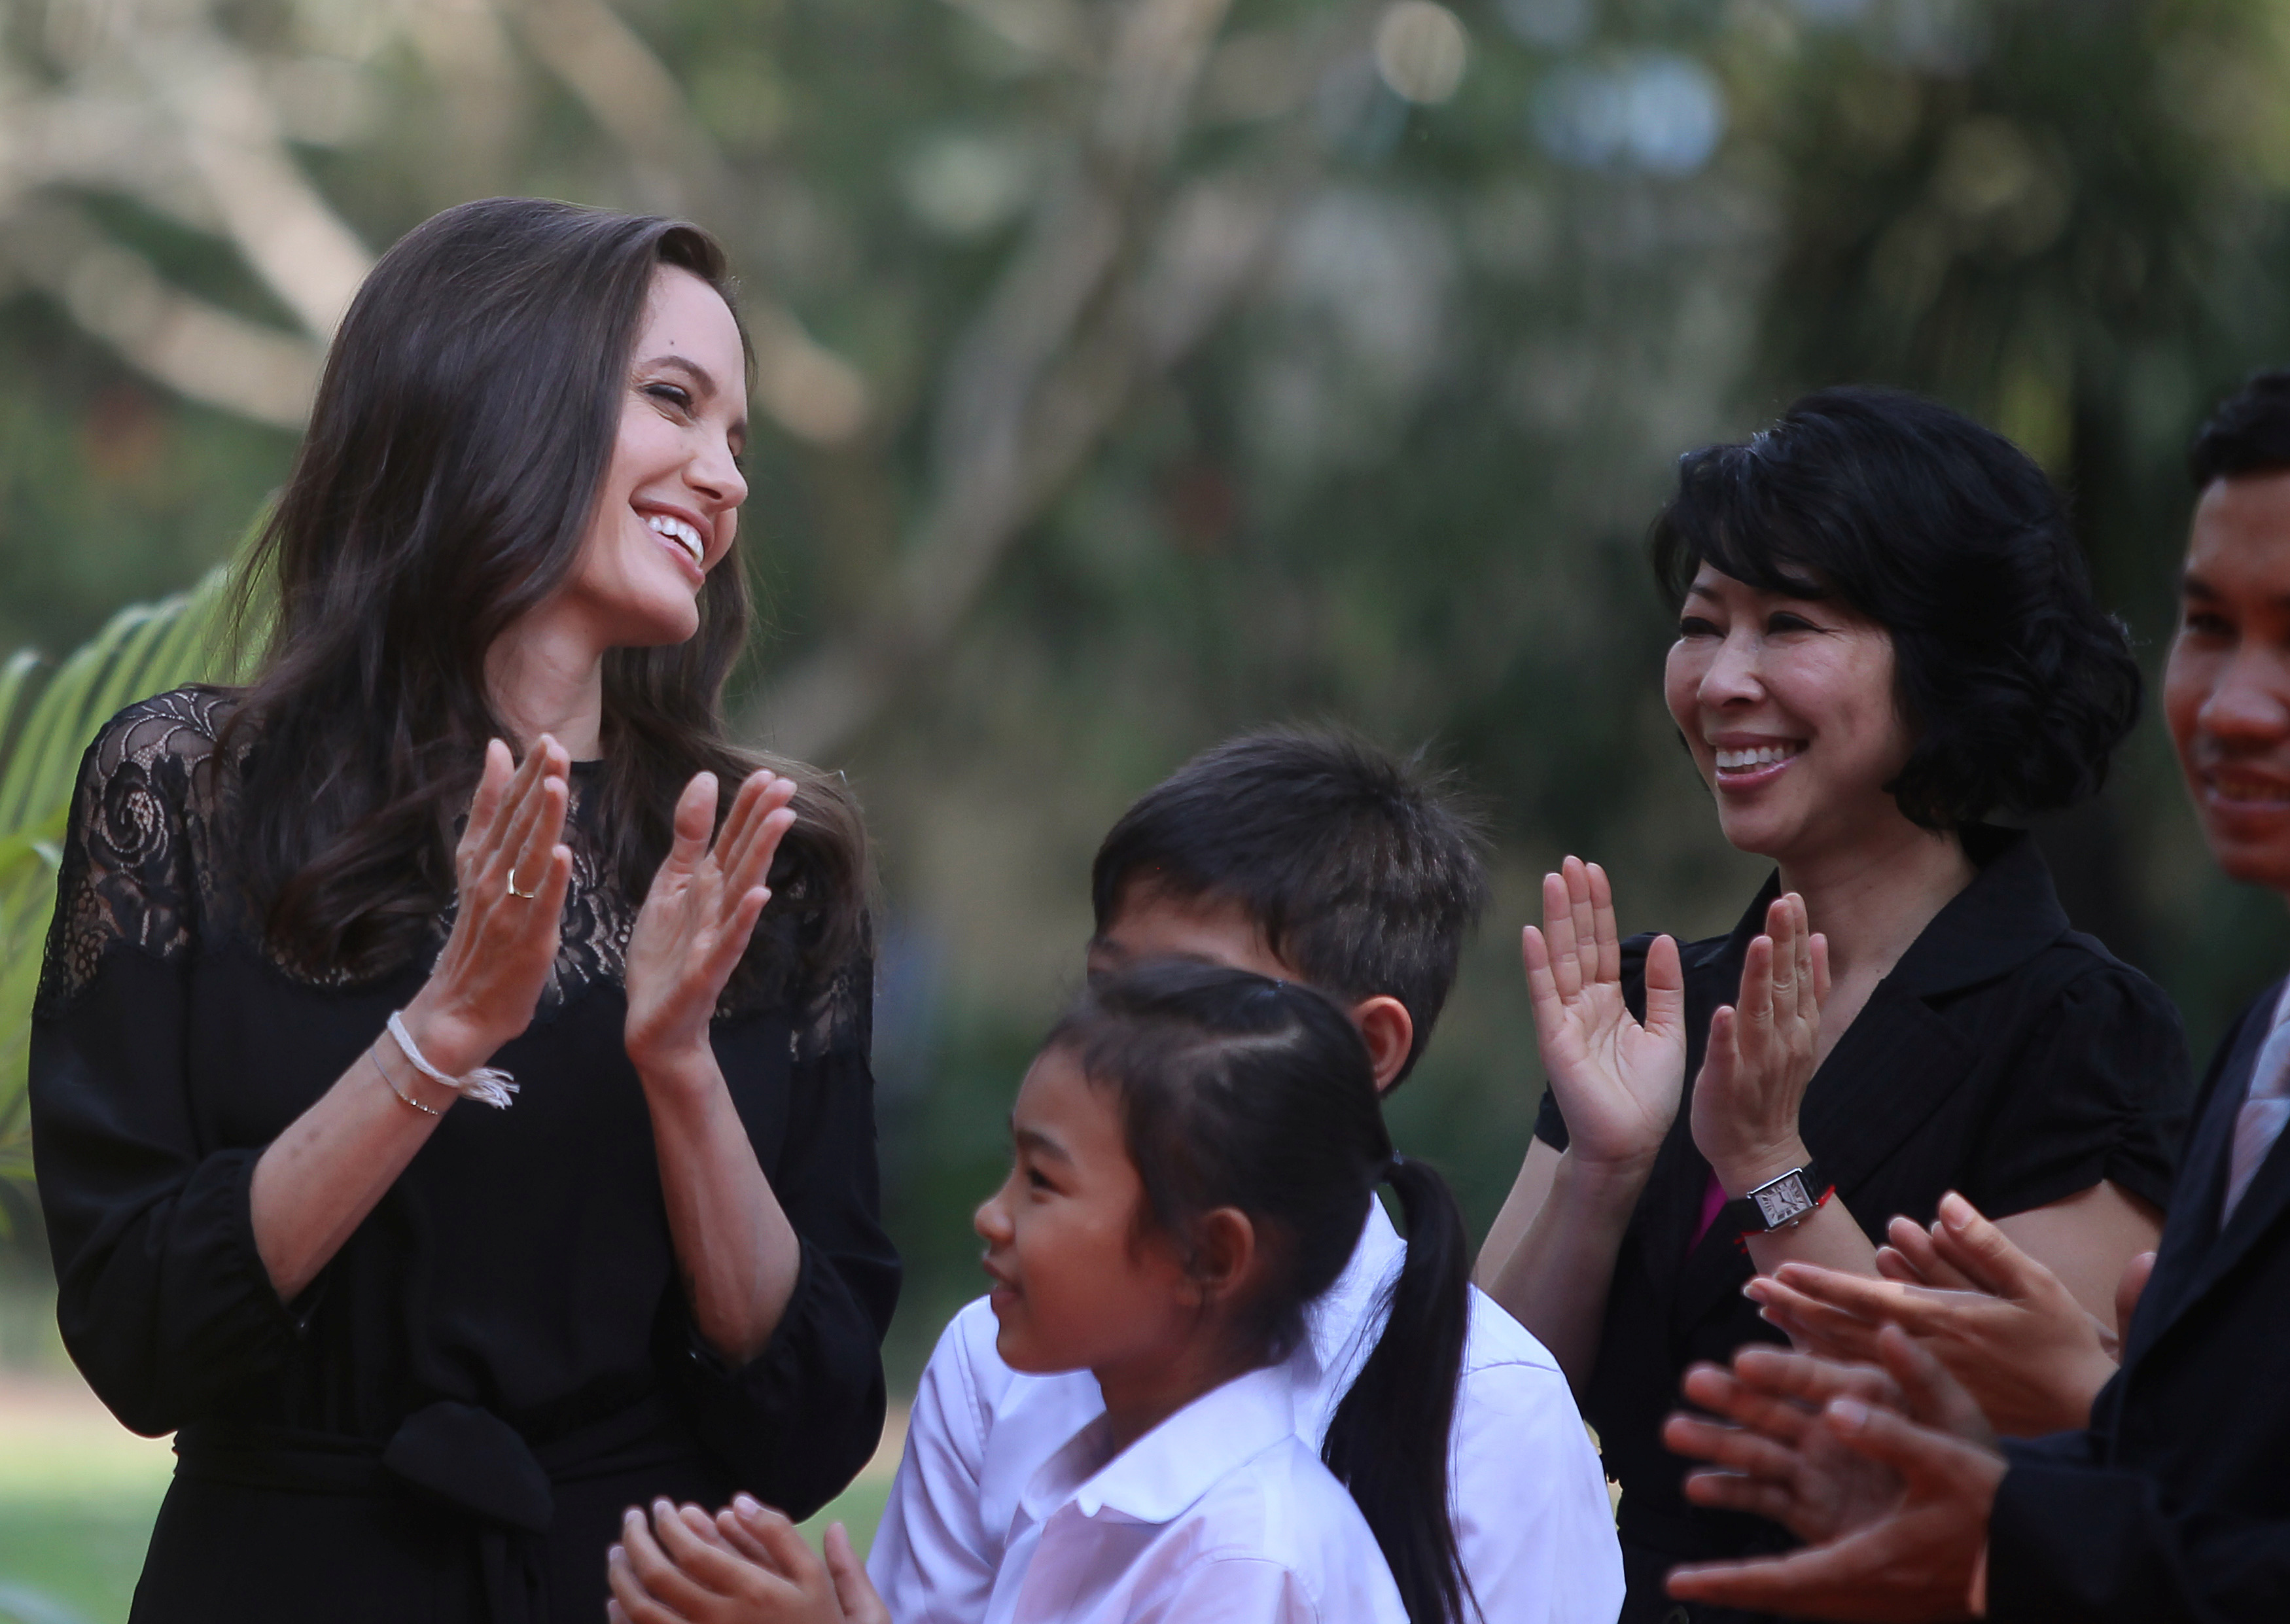 Actress Angelina Jolie (L) and Cambodian-born American human rights activist and lecturer Loung Ung laugh as they arrive for a news conference at a hotel in Siem Reap province, Cambodia, February 18, 2017. REUTERS/Samrang Pring     TPX IMAGES OF THE DAY - RTSZ8LA